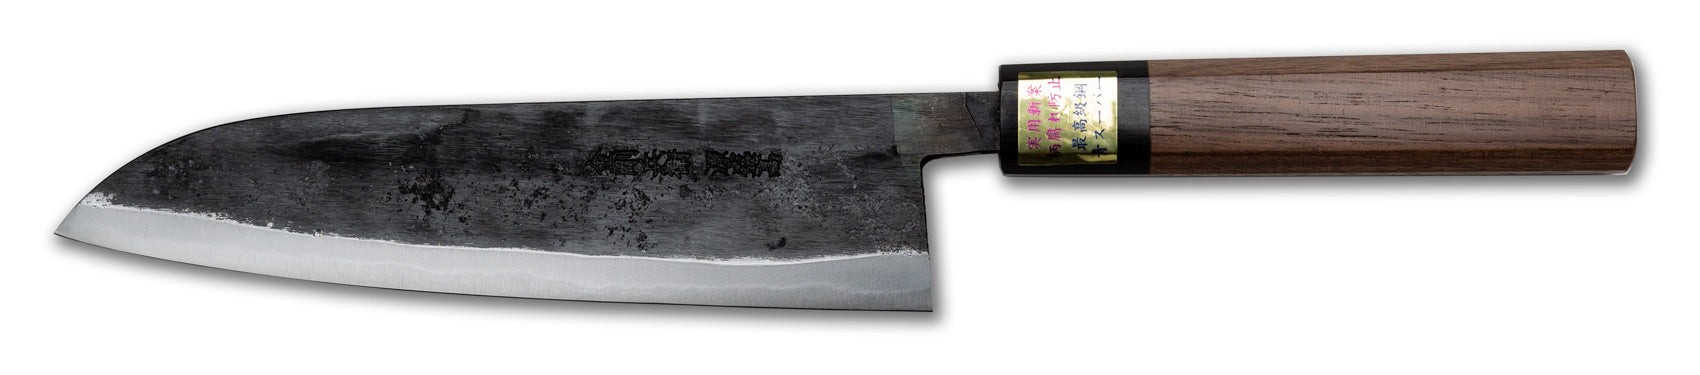 "Moritaka Supreme Santoku, 185mm (7.3""), Aogami/Blue Super Carbon Steel, Walnut Handle"